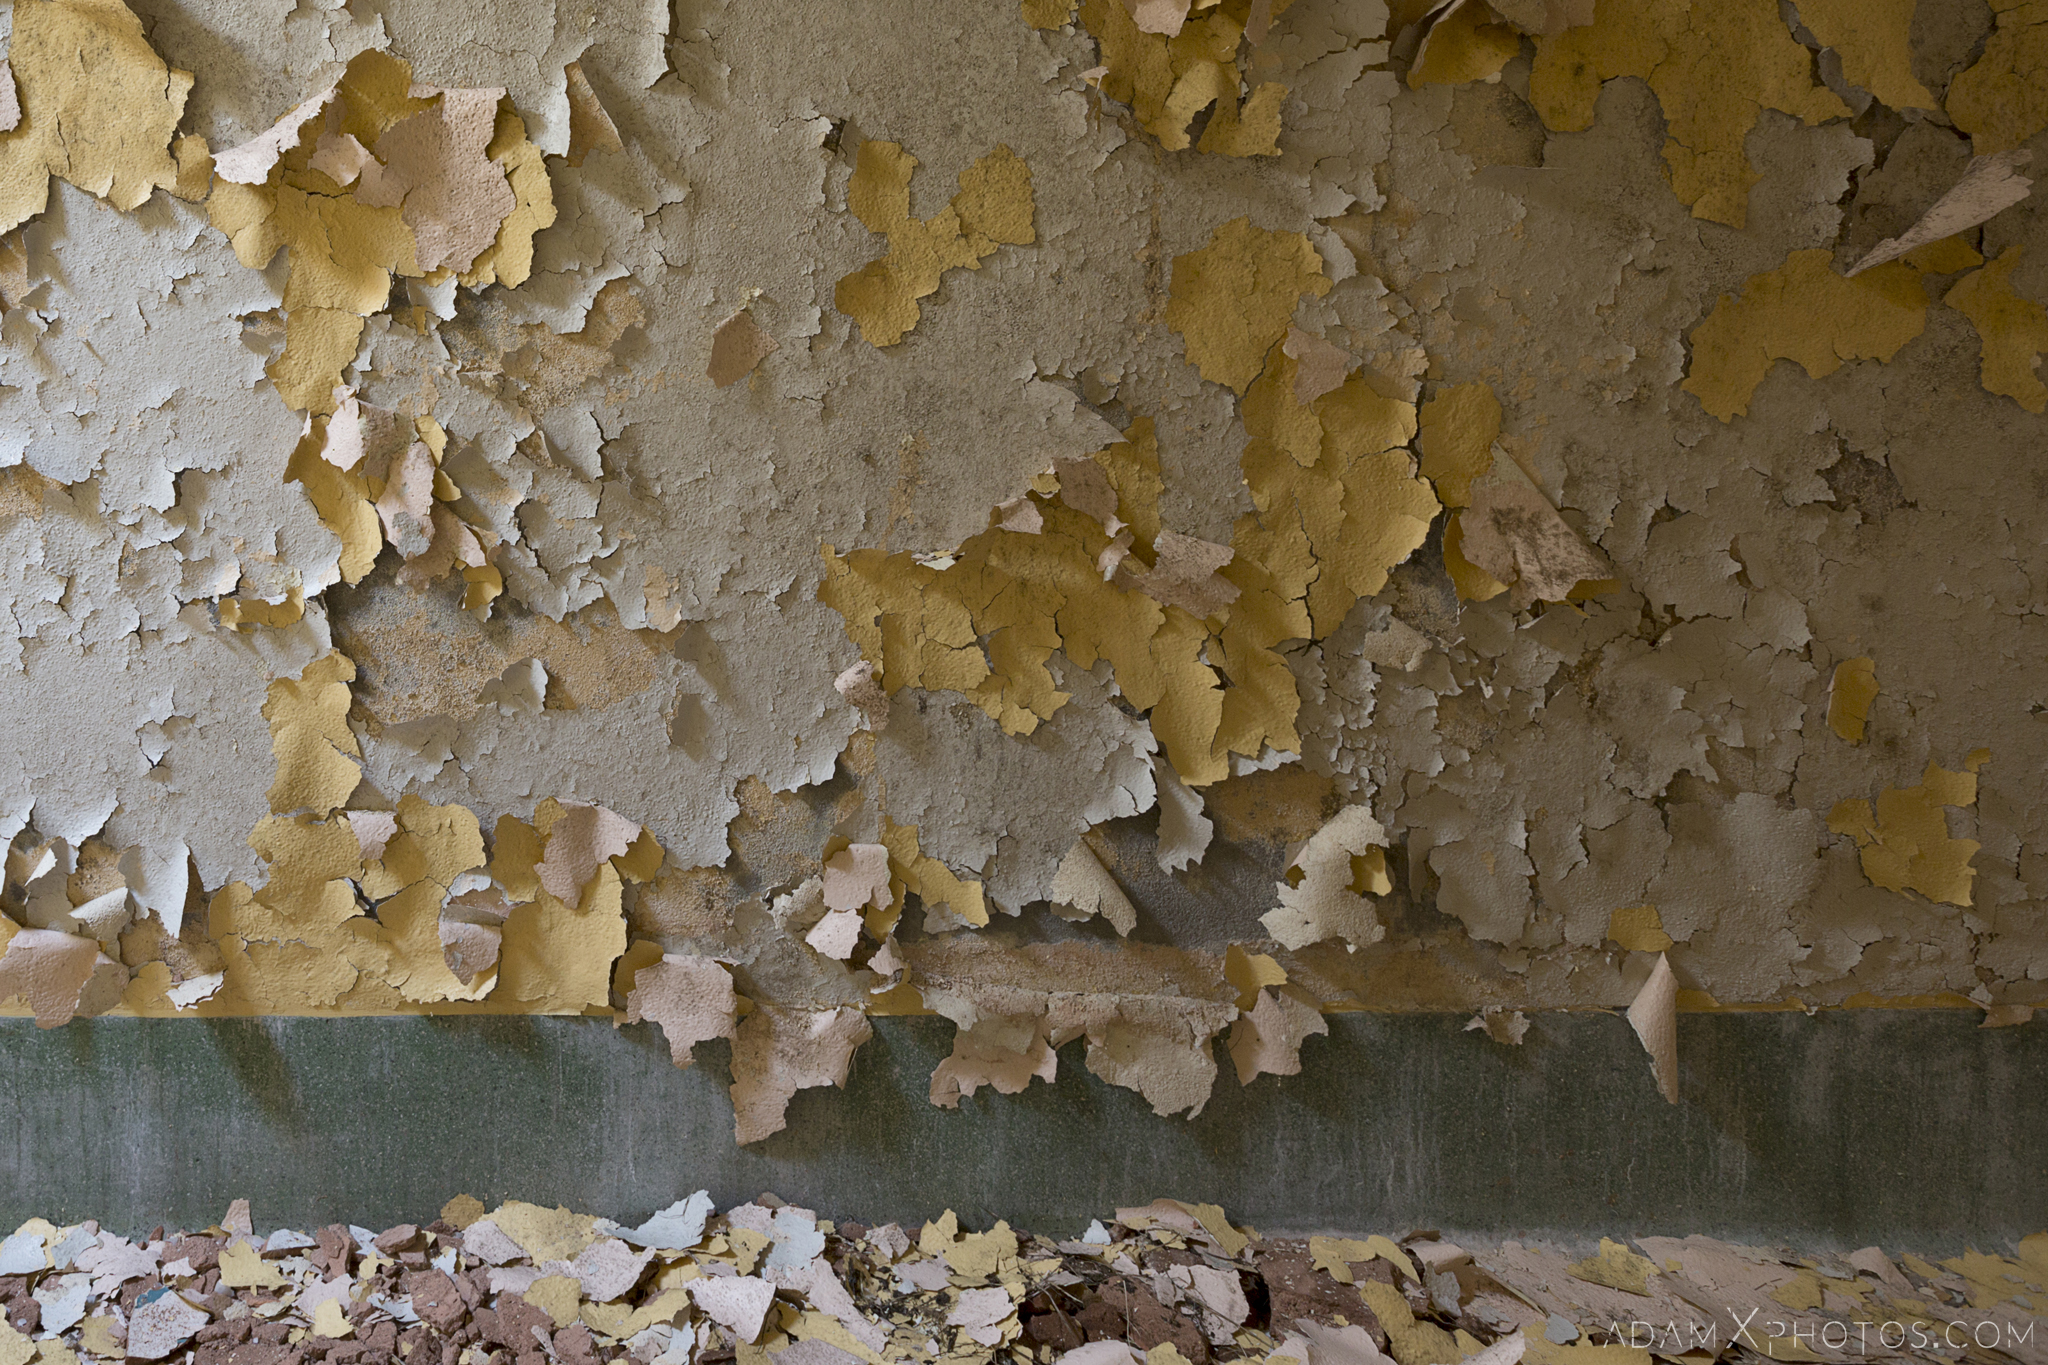 peeling paint wall yellow green Connacht District Lunatic Asylum St Brigid's Hospital Adam X Urbex Urban Exploration Ireland Ballinasloe Access 2017 Abandoned decay lost forgotten derelict location creepy haunting eerie